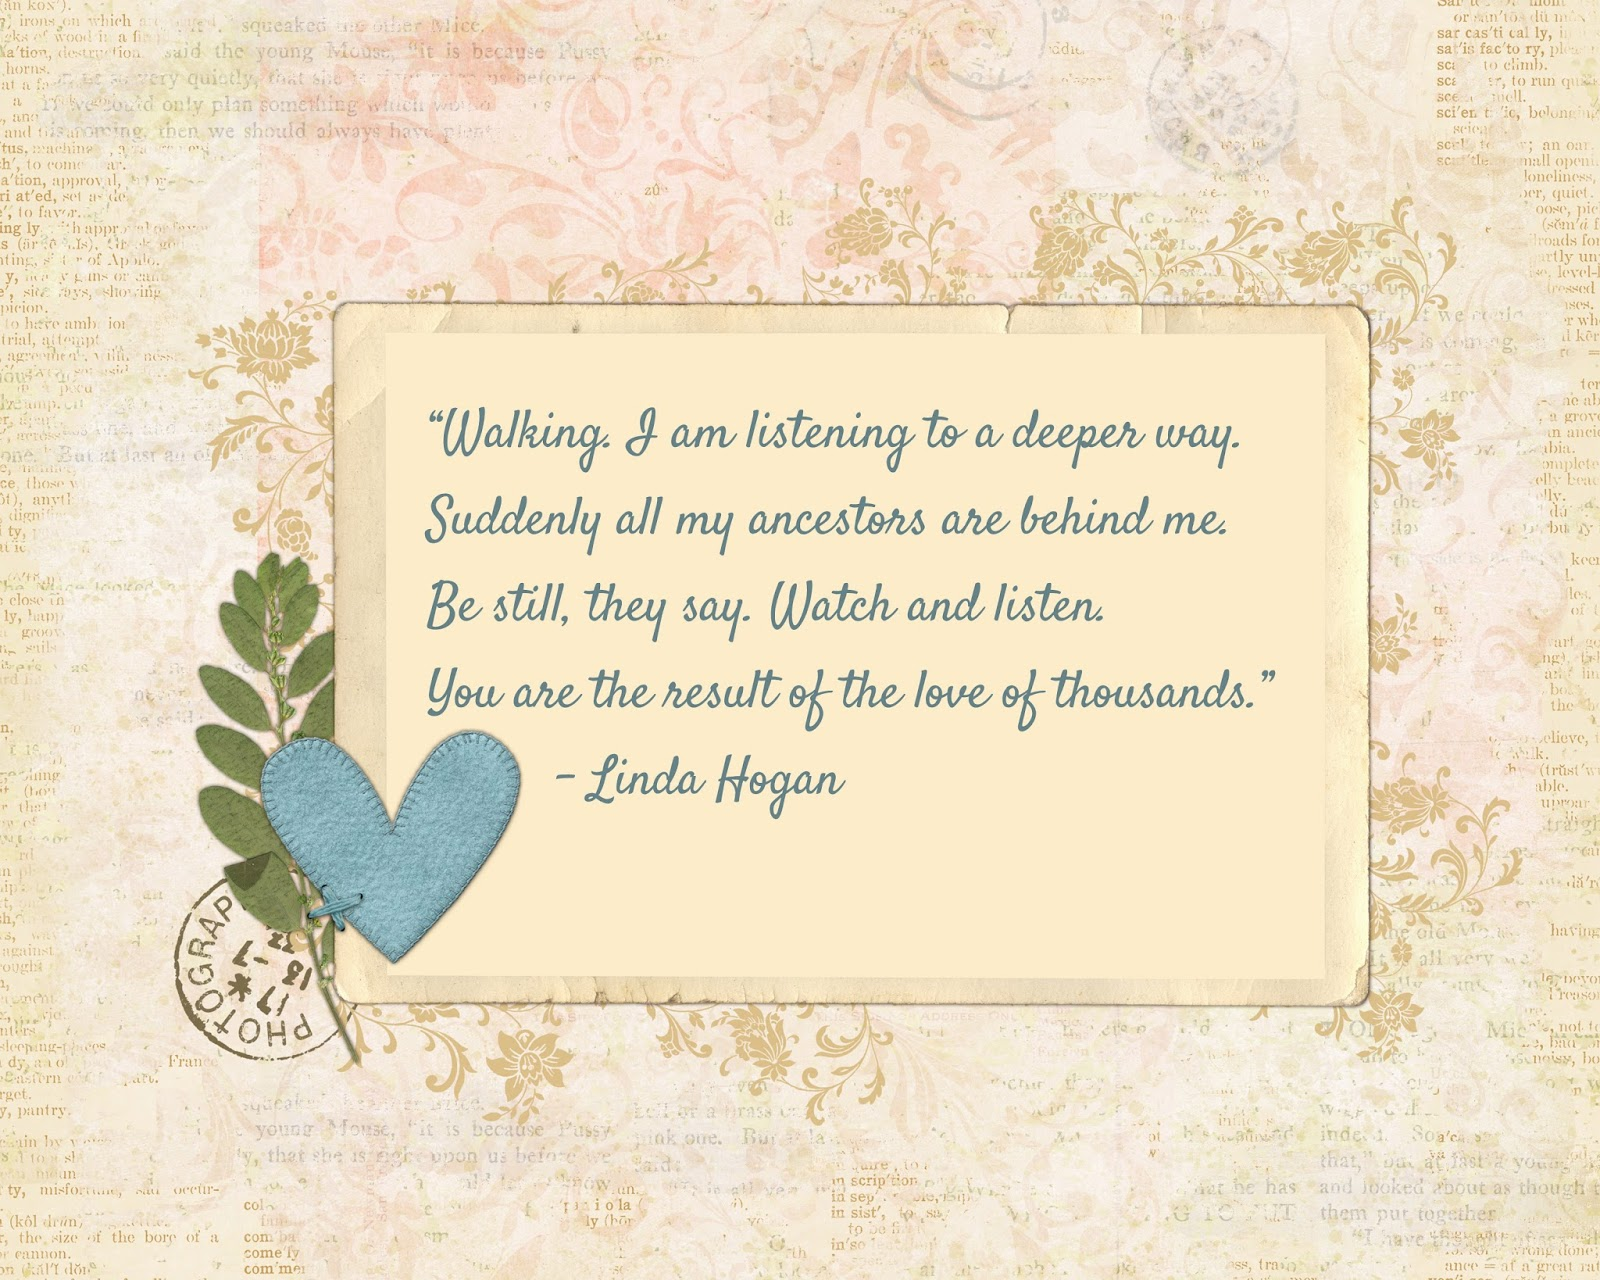 walking linda hogan essay Questions: dwellings by linda hogan in the spirit of hogan's essay how do these paths affect the very nature of our walking.